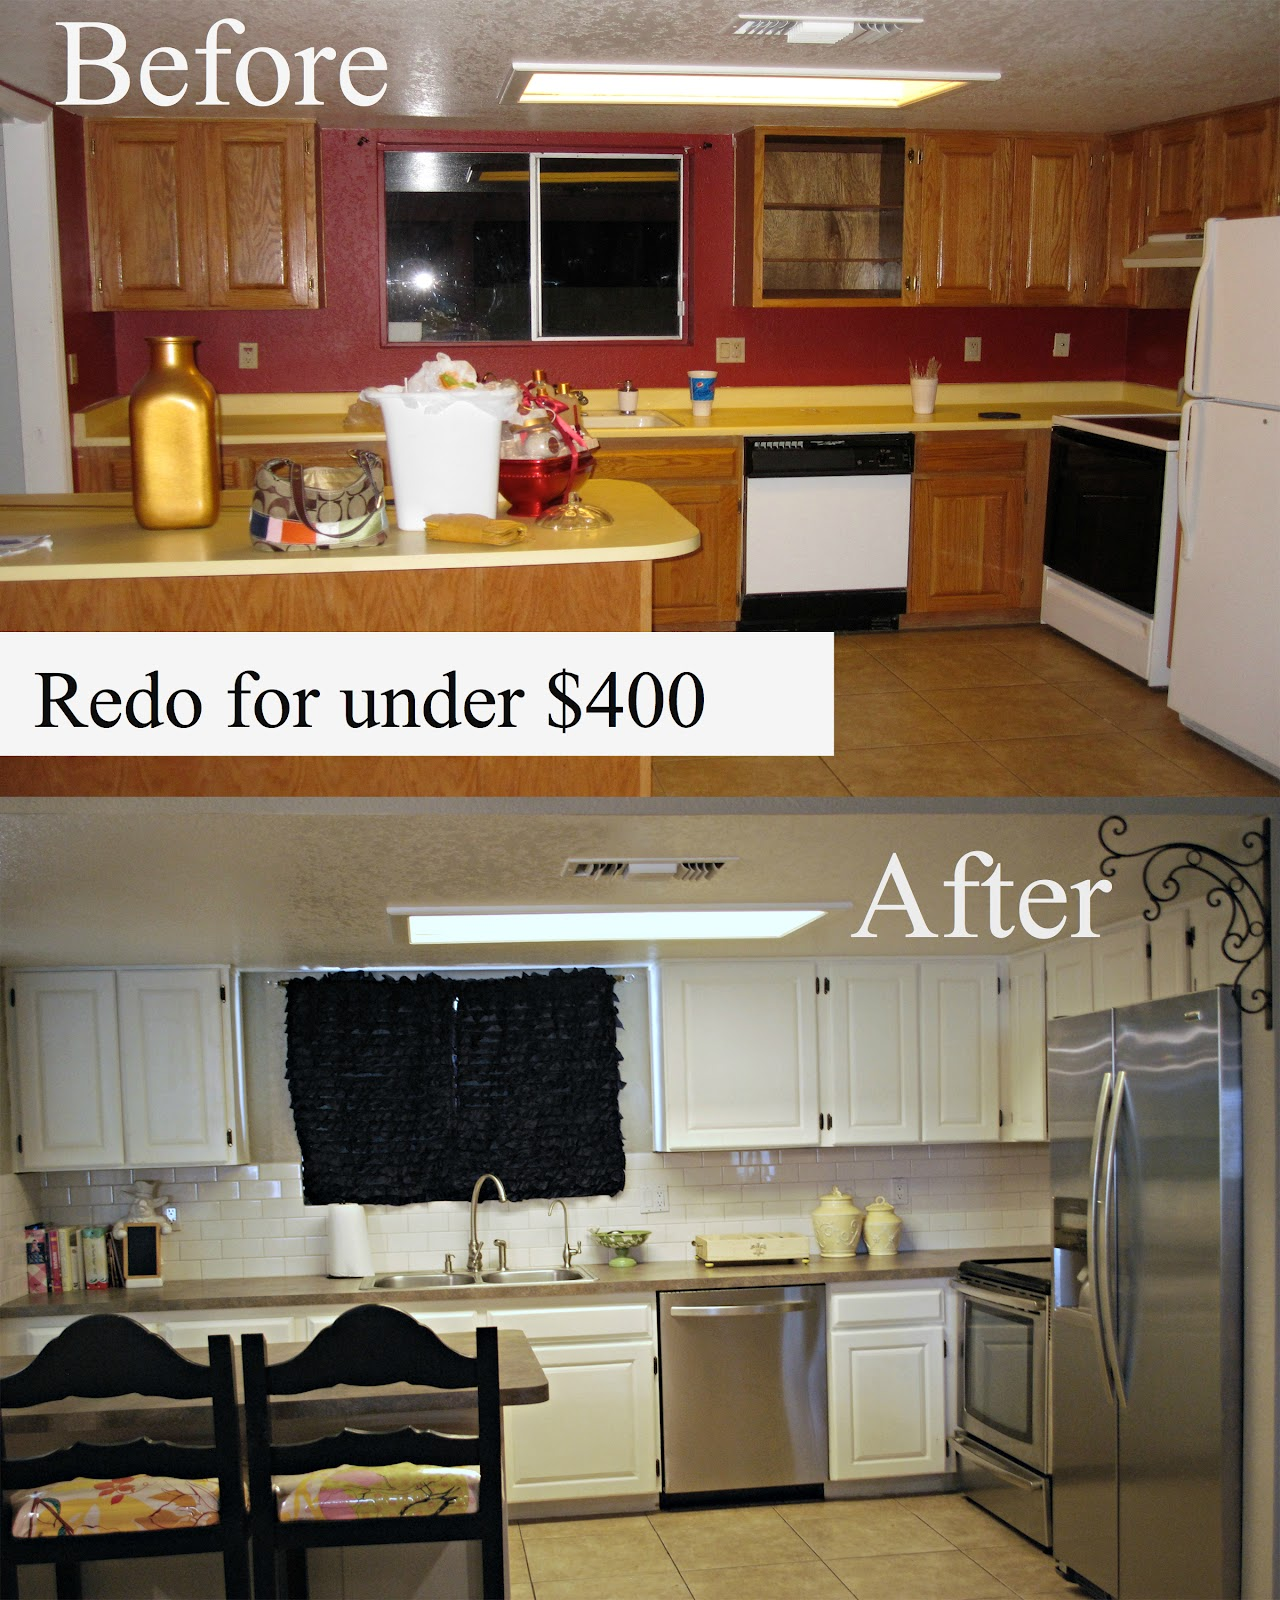 redo my kitchen cook stoves under 400 classy clutter